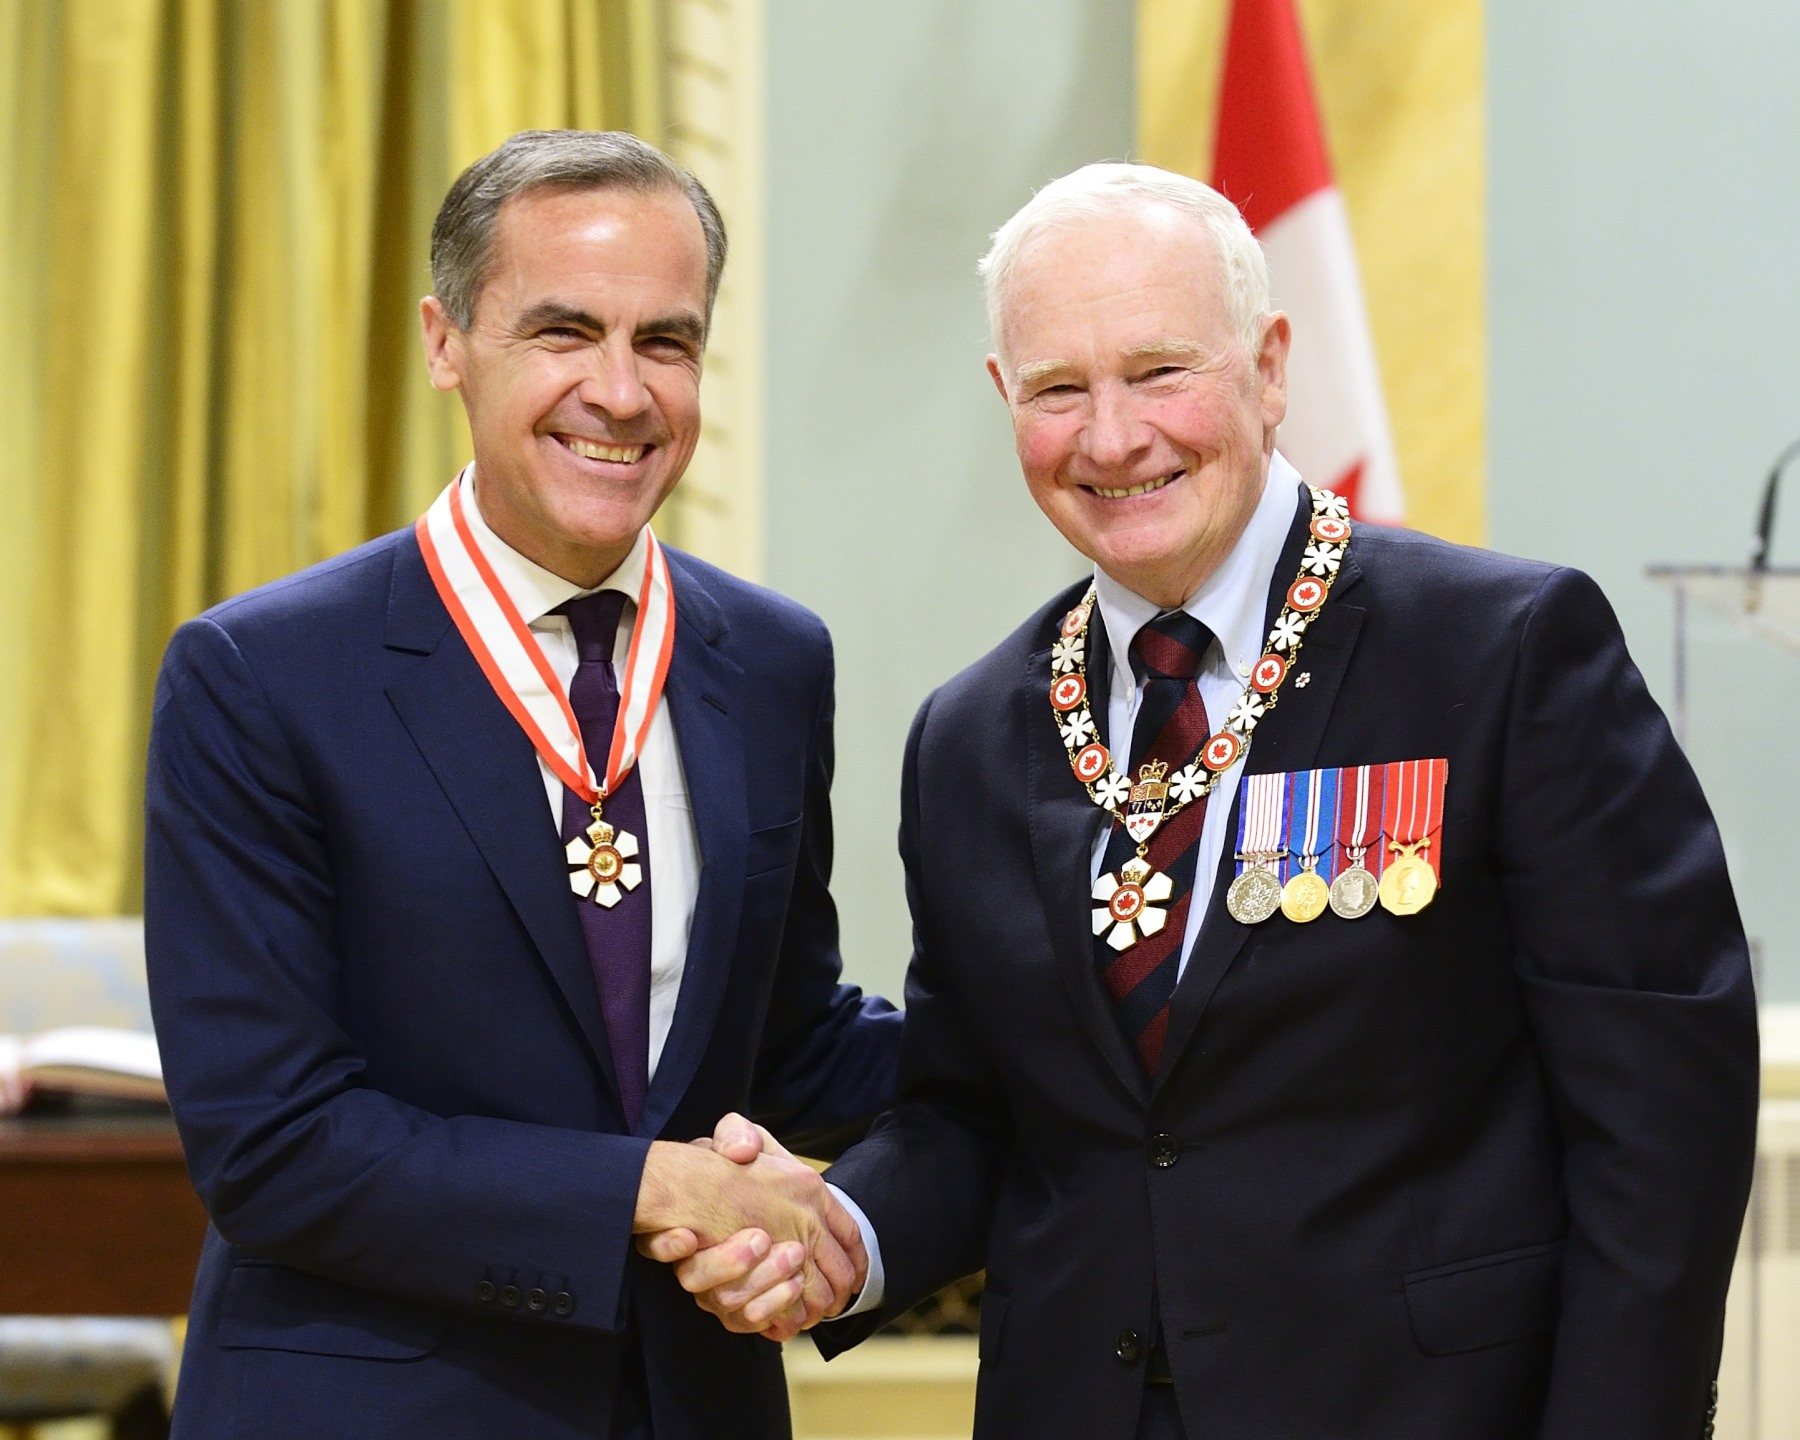 Mark Carney, O.C. (London, United Kingdom and Ottawa, Ontario) is a leader in the development of monetary and financial-sector policies in Canada and around the world. Dedicated to the public good, he left a successful career in the financial industry to answer the call to public service, ascending to the position of governor of the Bank of Canada. In this role, he was one of the key players in steering the Canadian economy through the global economic crisis, championing clear communication and predictability. His distinguished leadership led to his appointment as chair of the Financial Stability Board and as governor of the Bank of England, the first non-Briton to be appointed to the position.